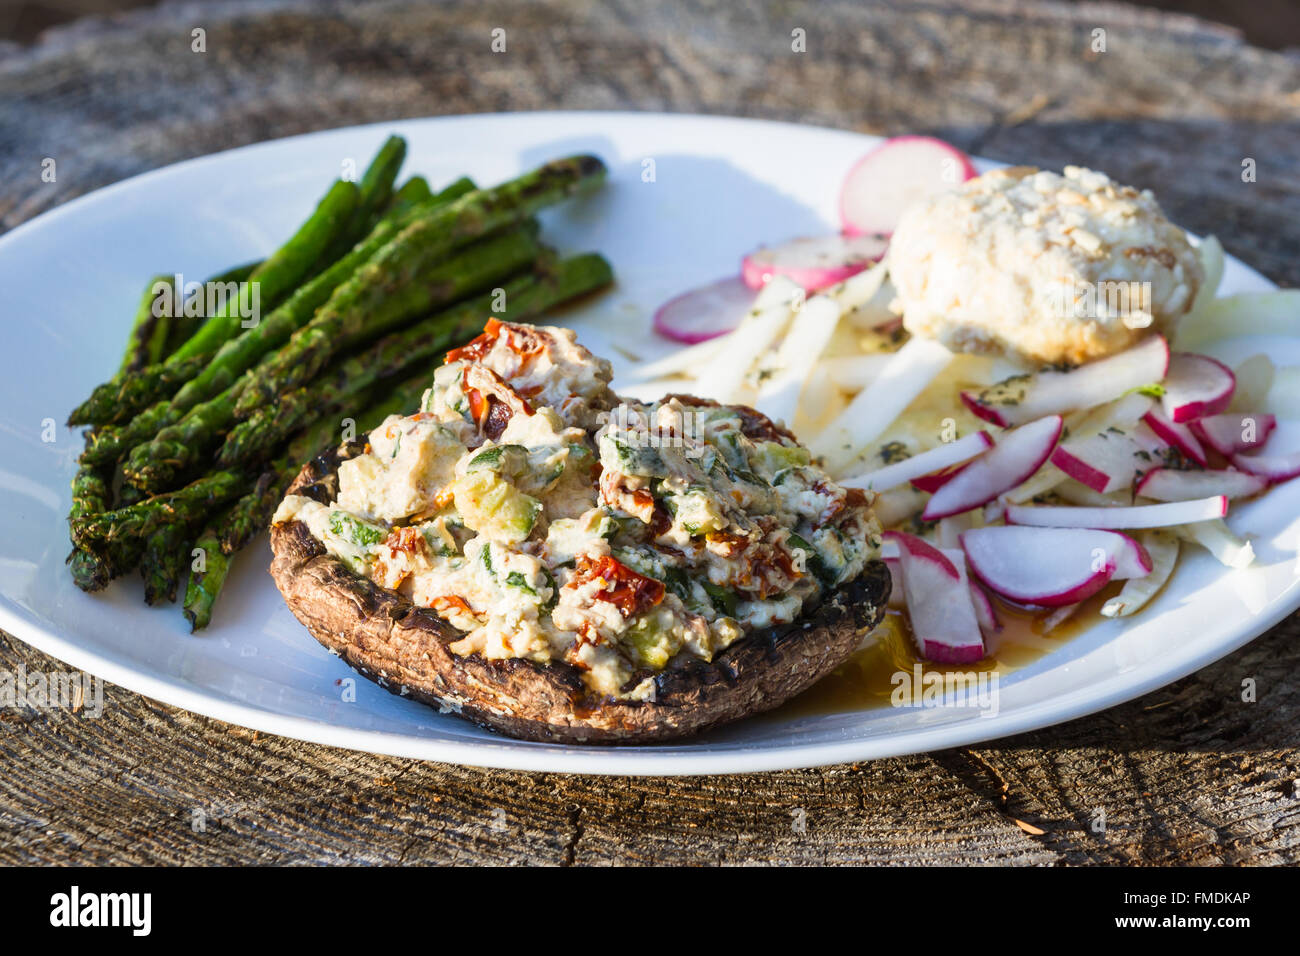 close up of a grilled stuffed mushroom served with charred asparagus and a fennel and radish salad Stock Photo